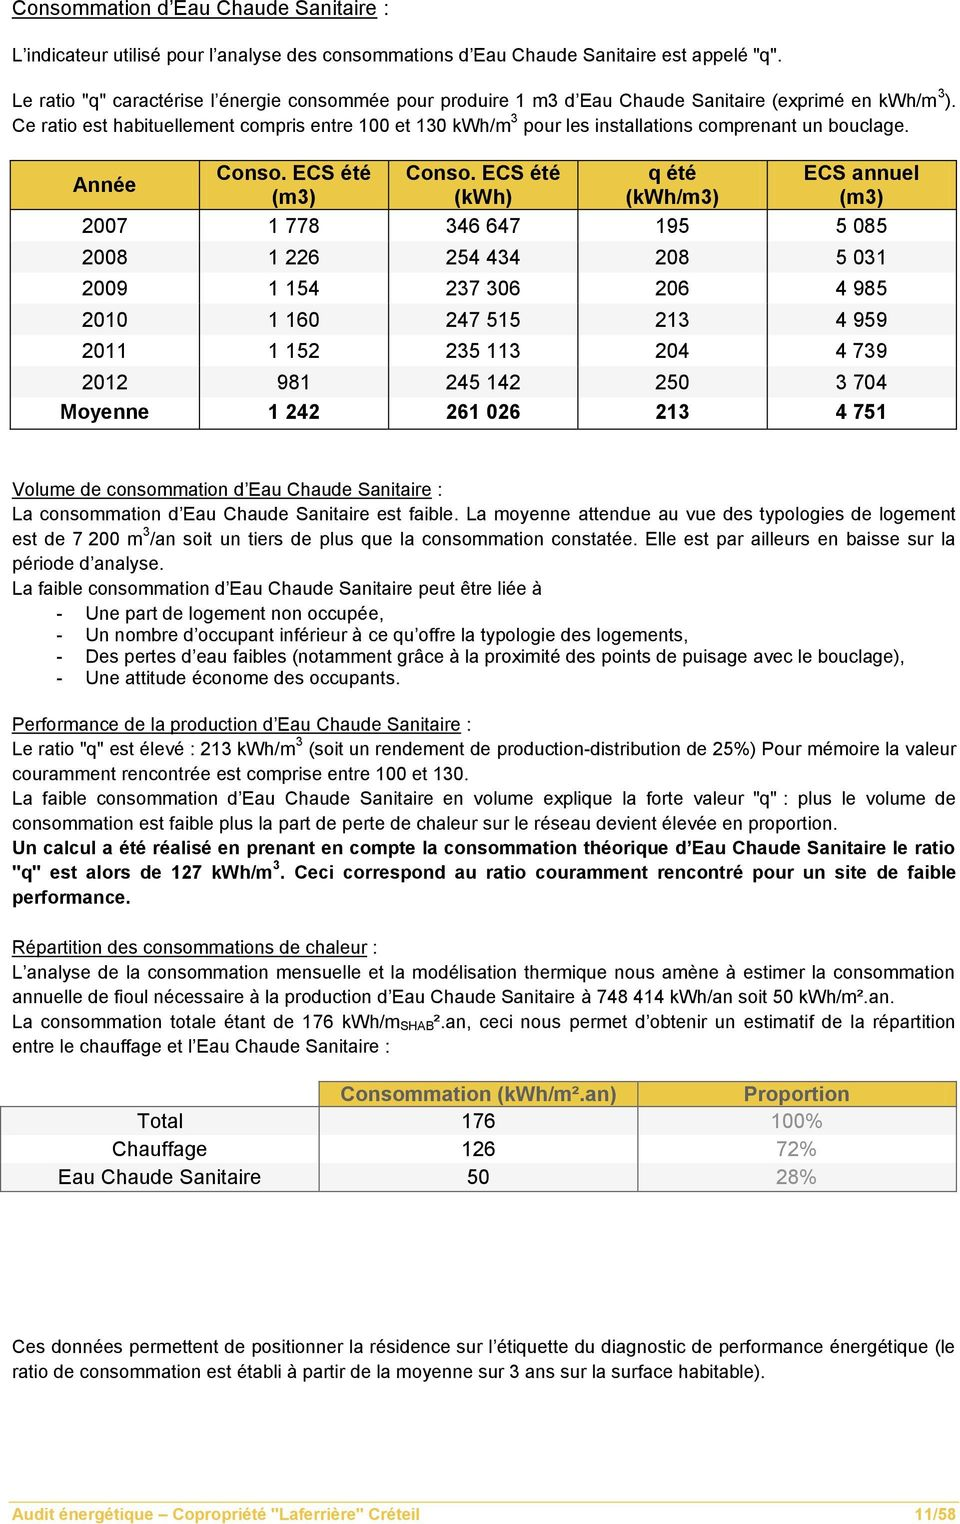 Audit energetique r sidence laferriere cr teil pdf - Consommation moyenne gaz m3 ...